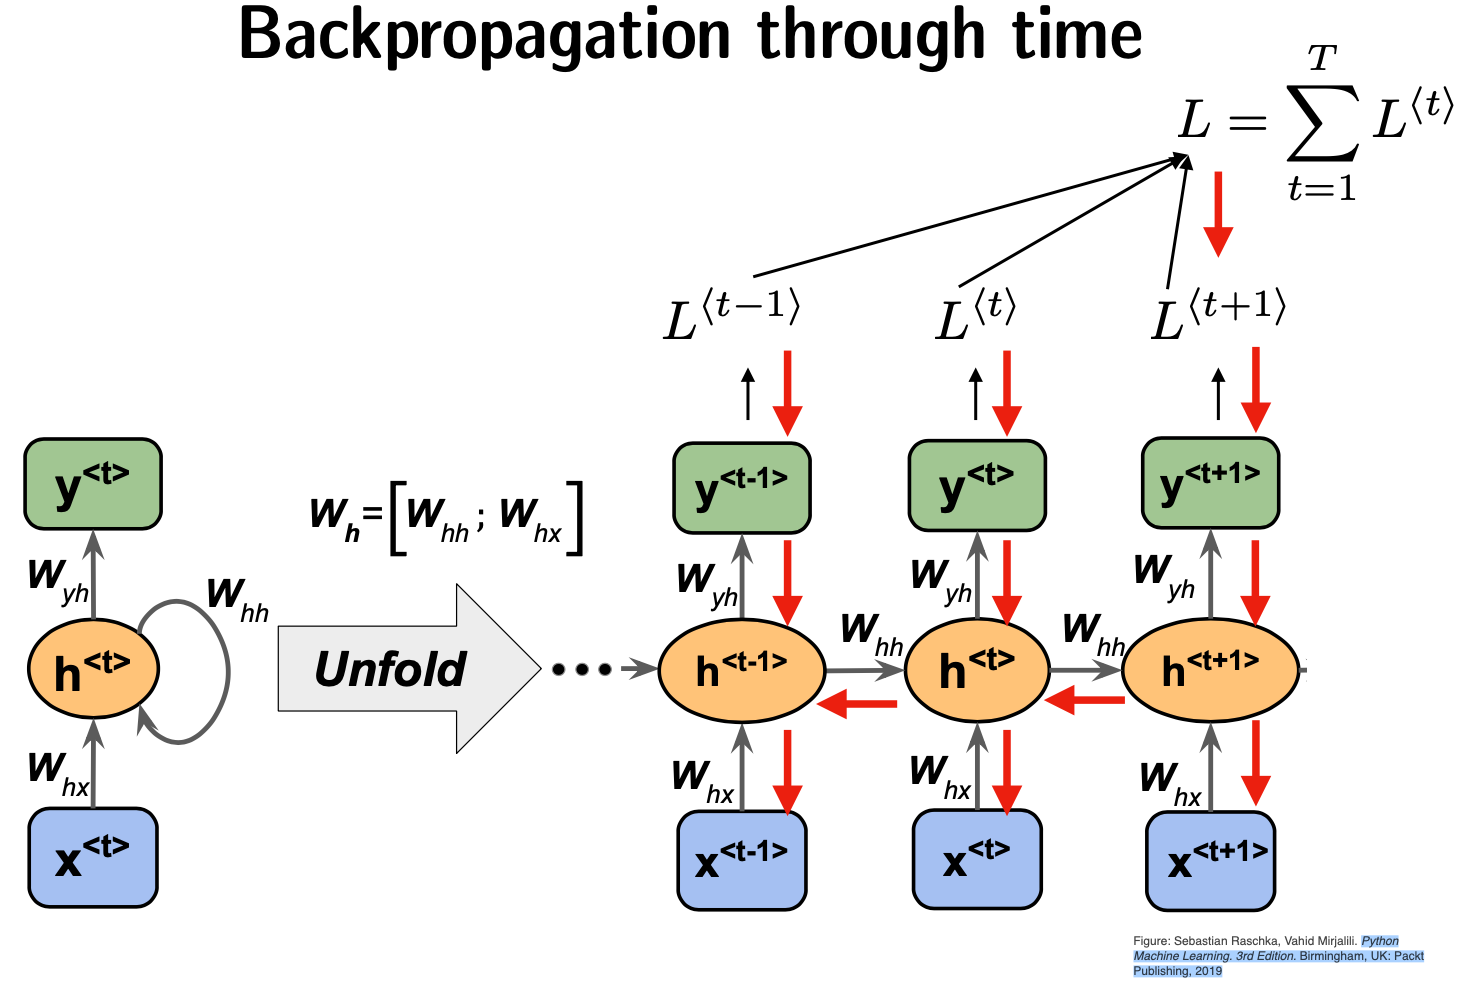 Backpropagation through time  [source link](https://github.com/rasbt/python-machine-learning-book-3rd-edition)